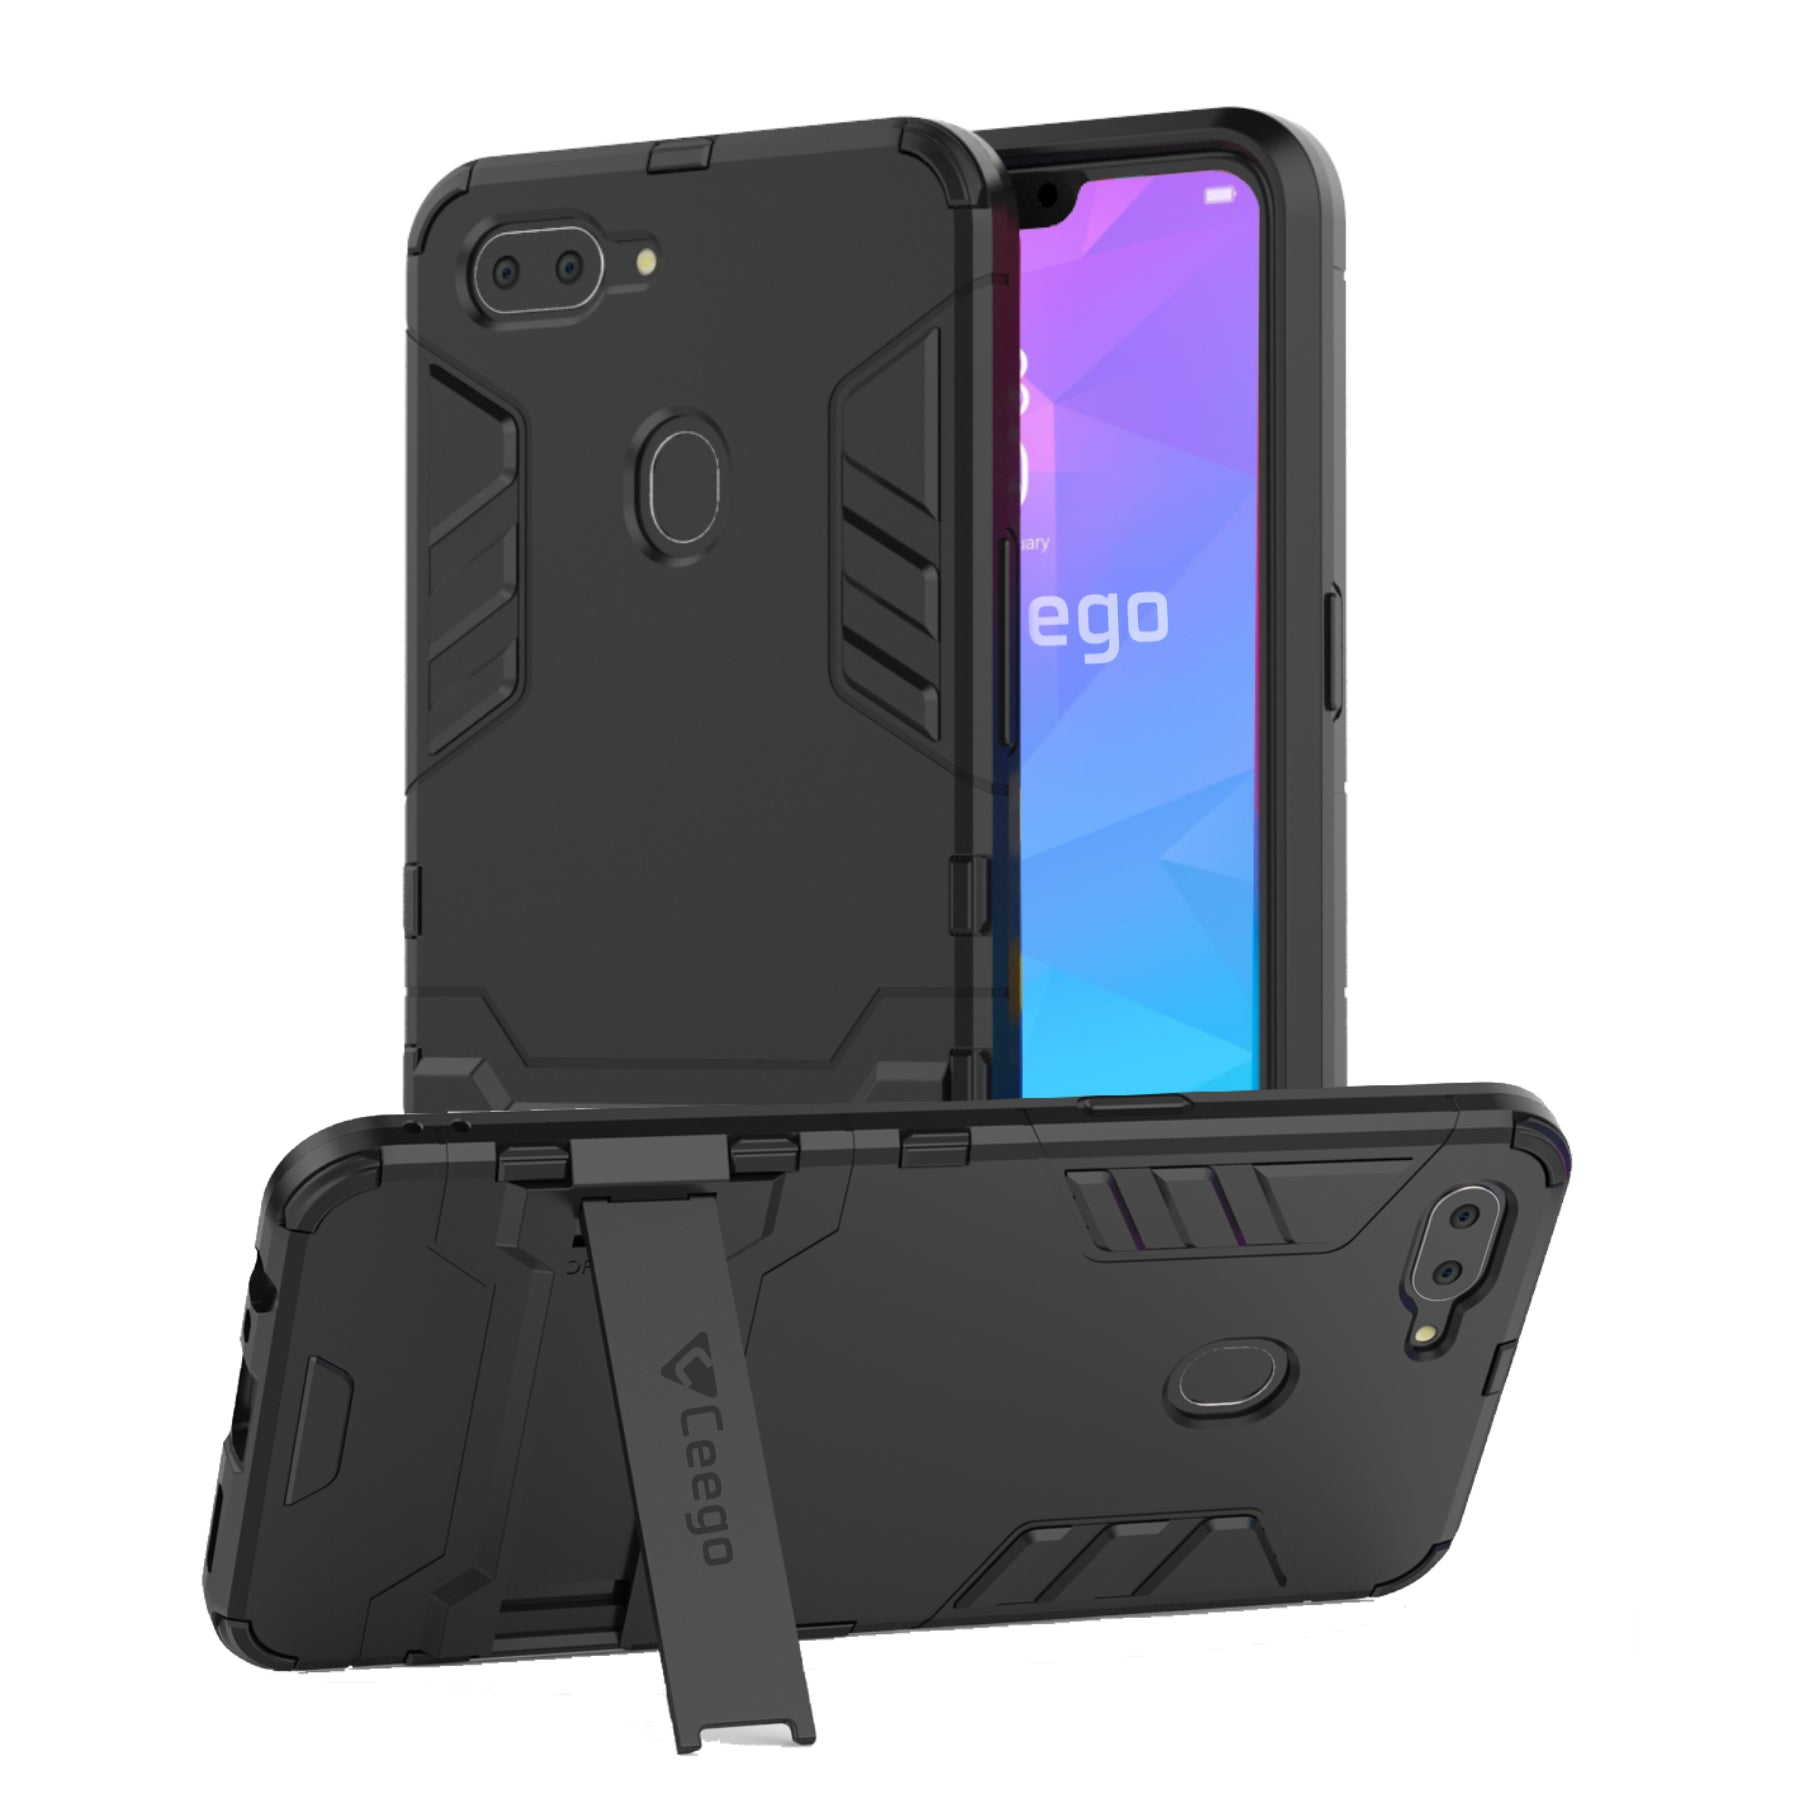 Ceego Stealth Defence Back Case for RealMe 2 – Matte Black